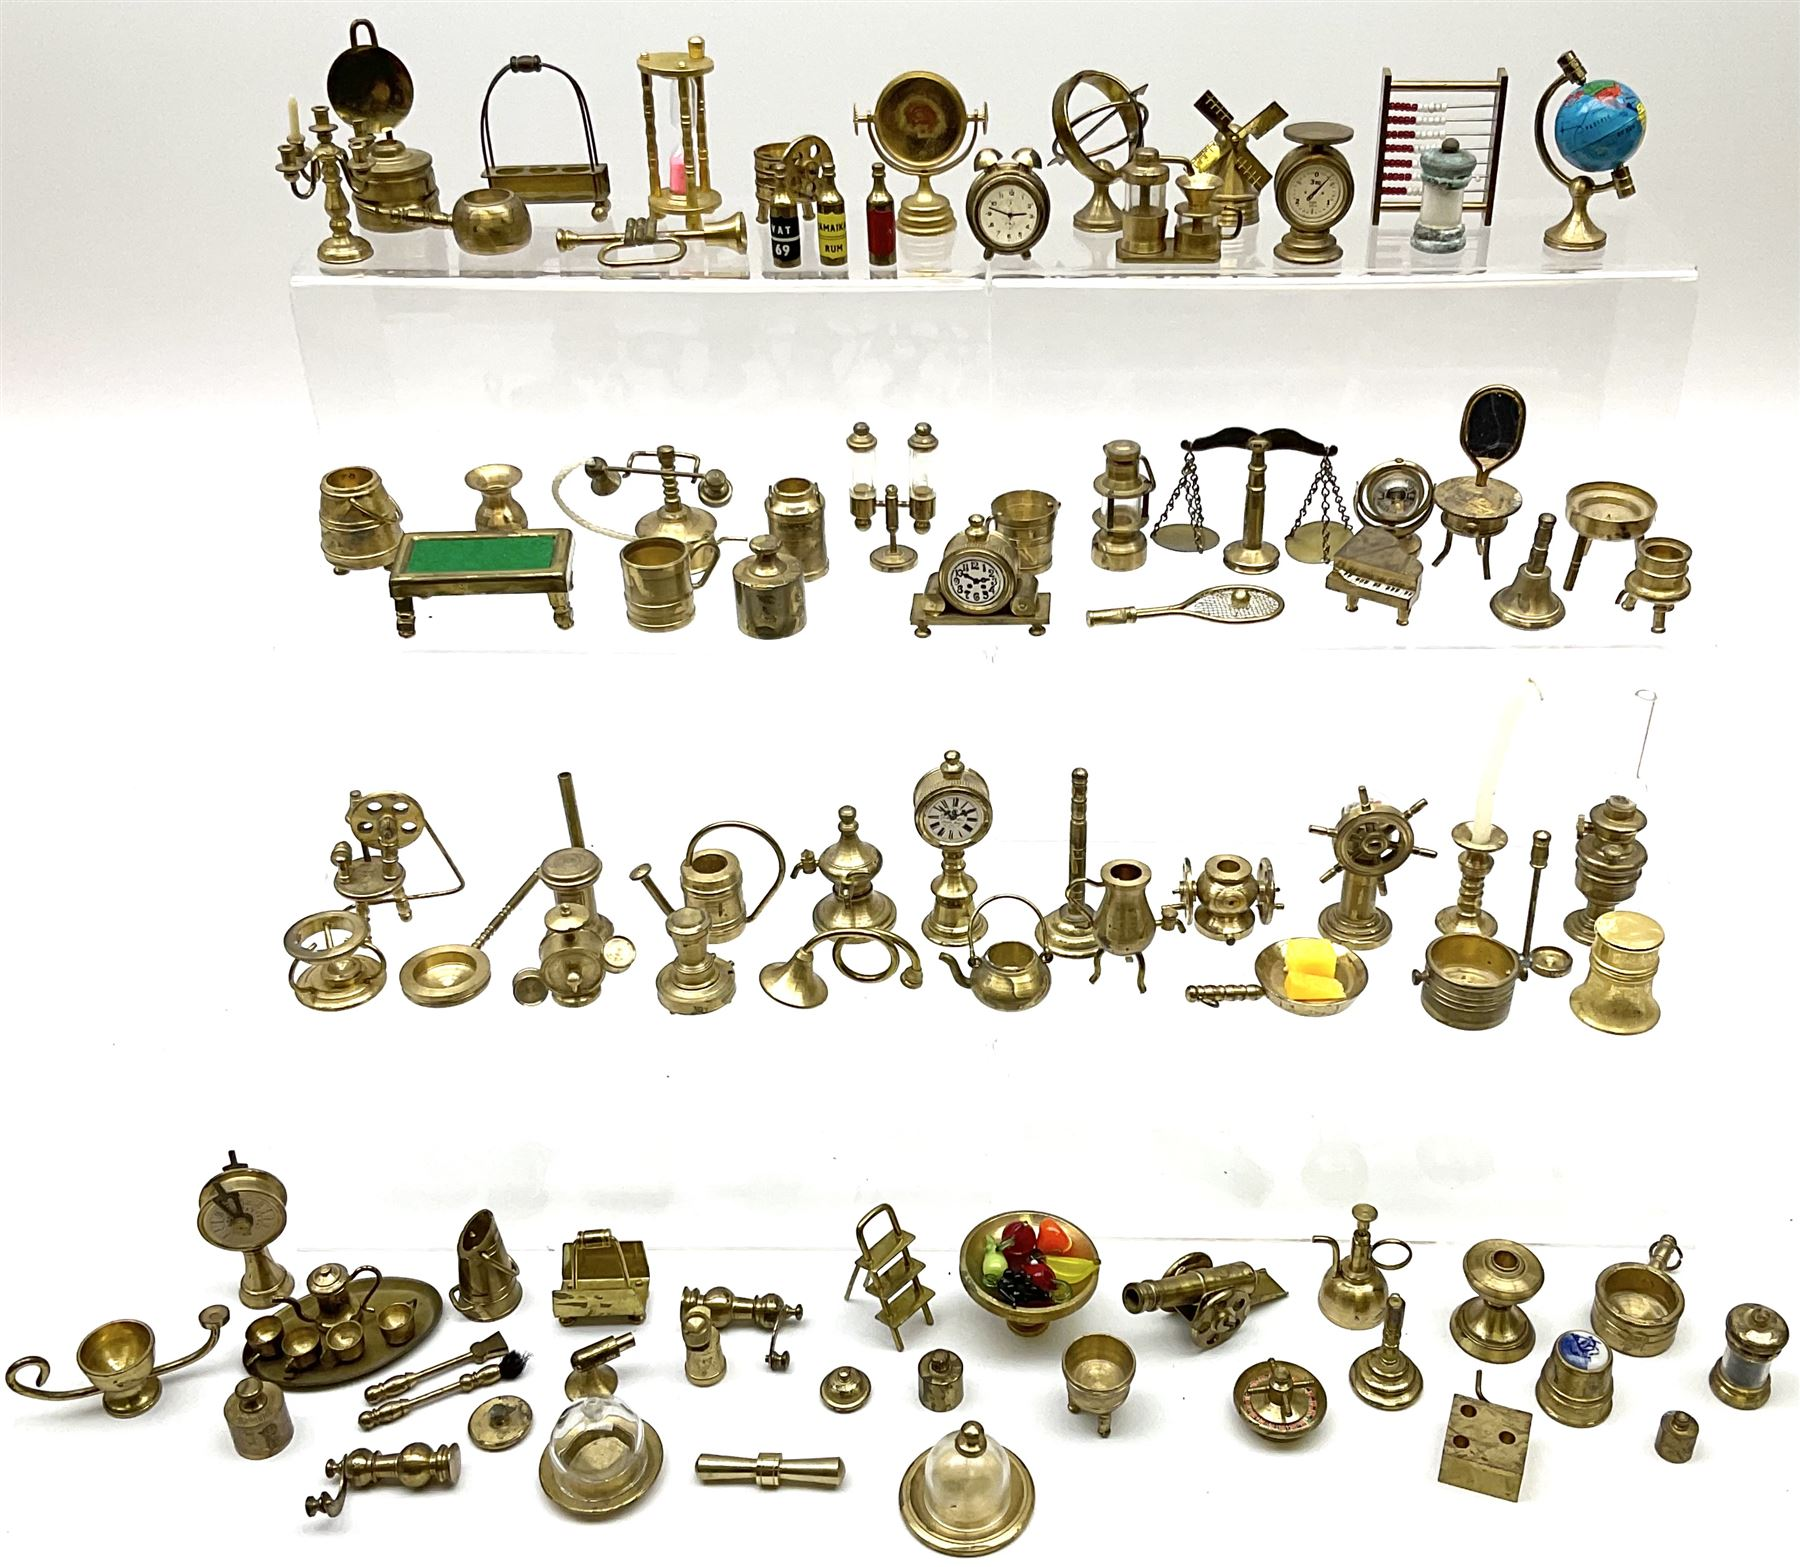 Over one-hundred various scale miniature brass ornaments suitable for decorating doll's houses inclu - Image 2 of 10